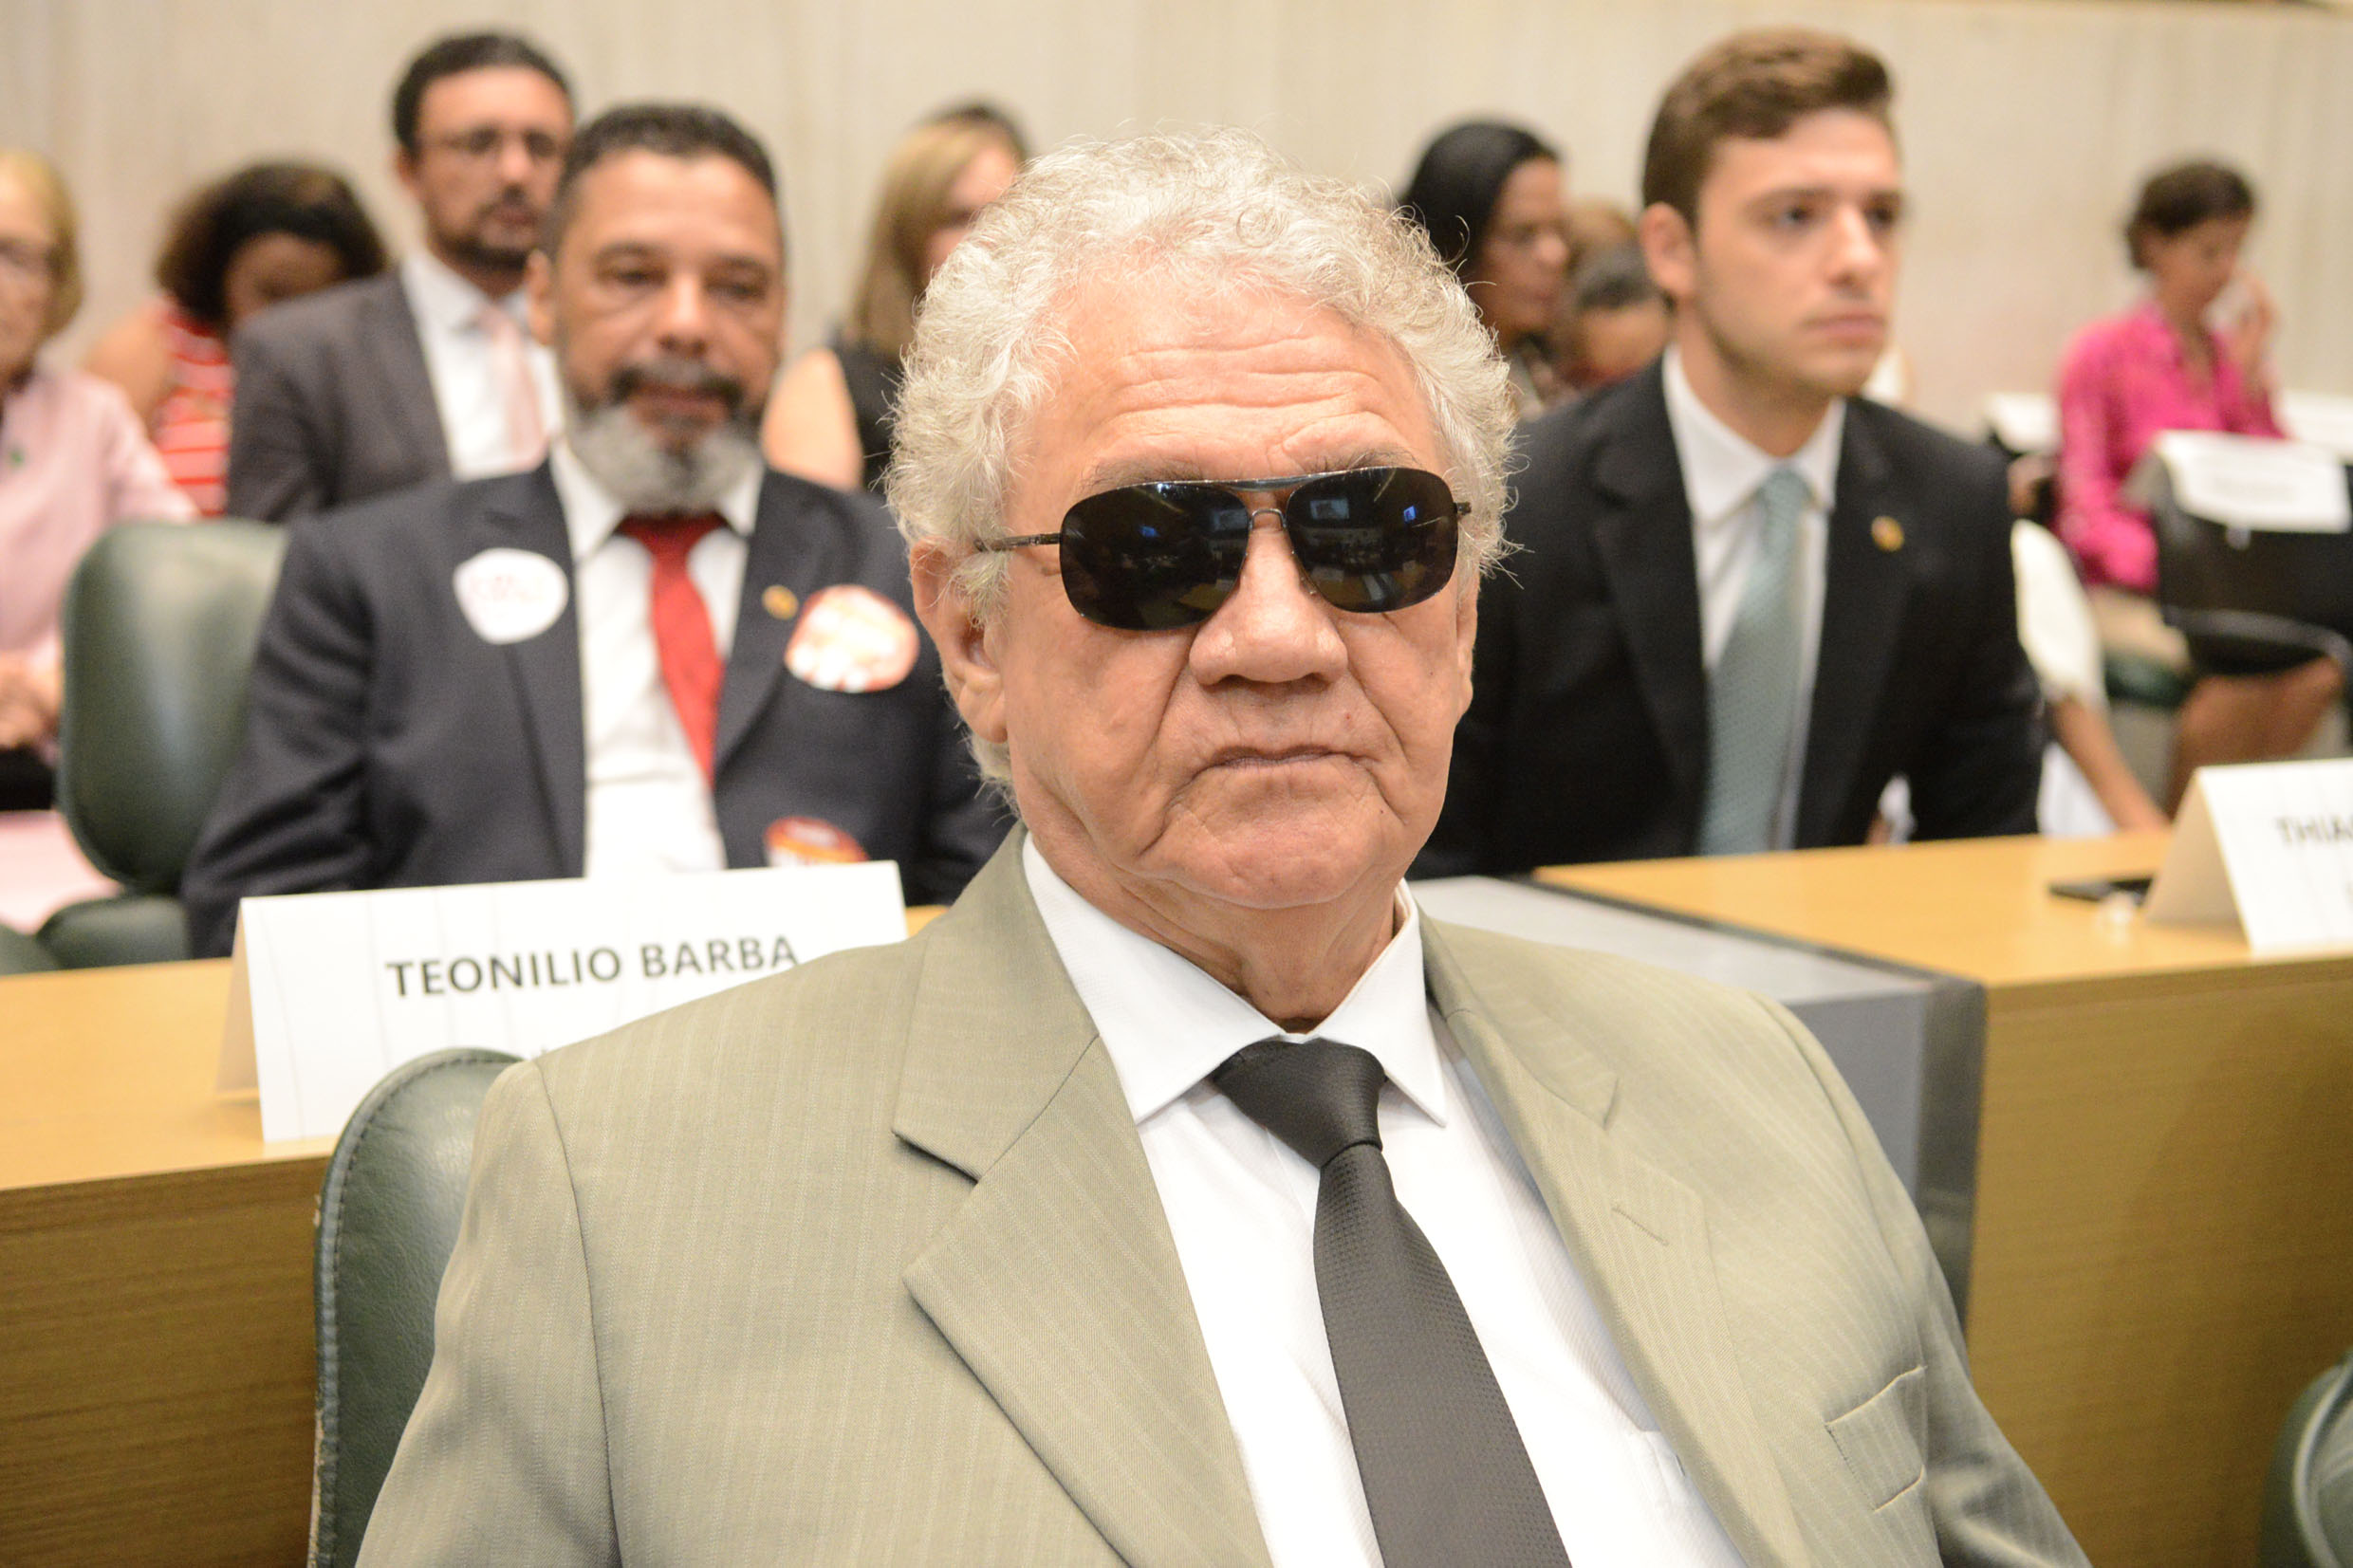 Rafael Silva (PSB)<a style='float:right' href='https://www3.al.sp.gov.br/repositorio/noticia/N-03-2019/fg231775.jpg' target=_blank><img src='/_img/material-file-download-white.png' width='14px' alt='Clique para baixar a imagem'></a>